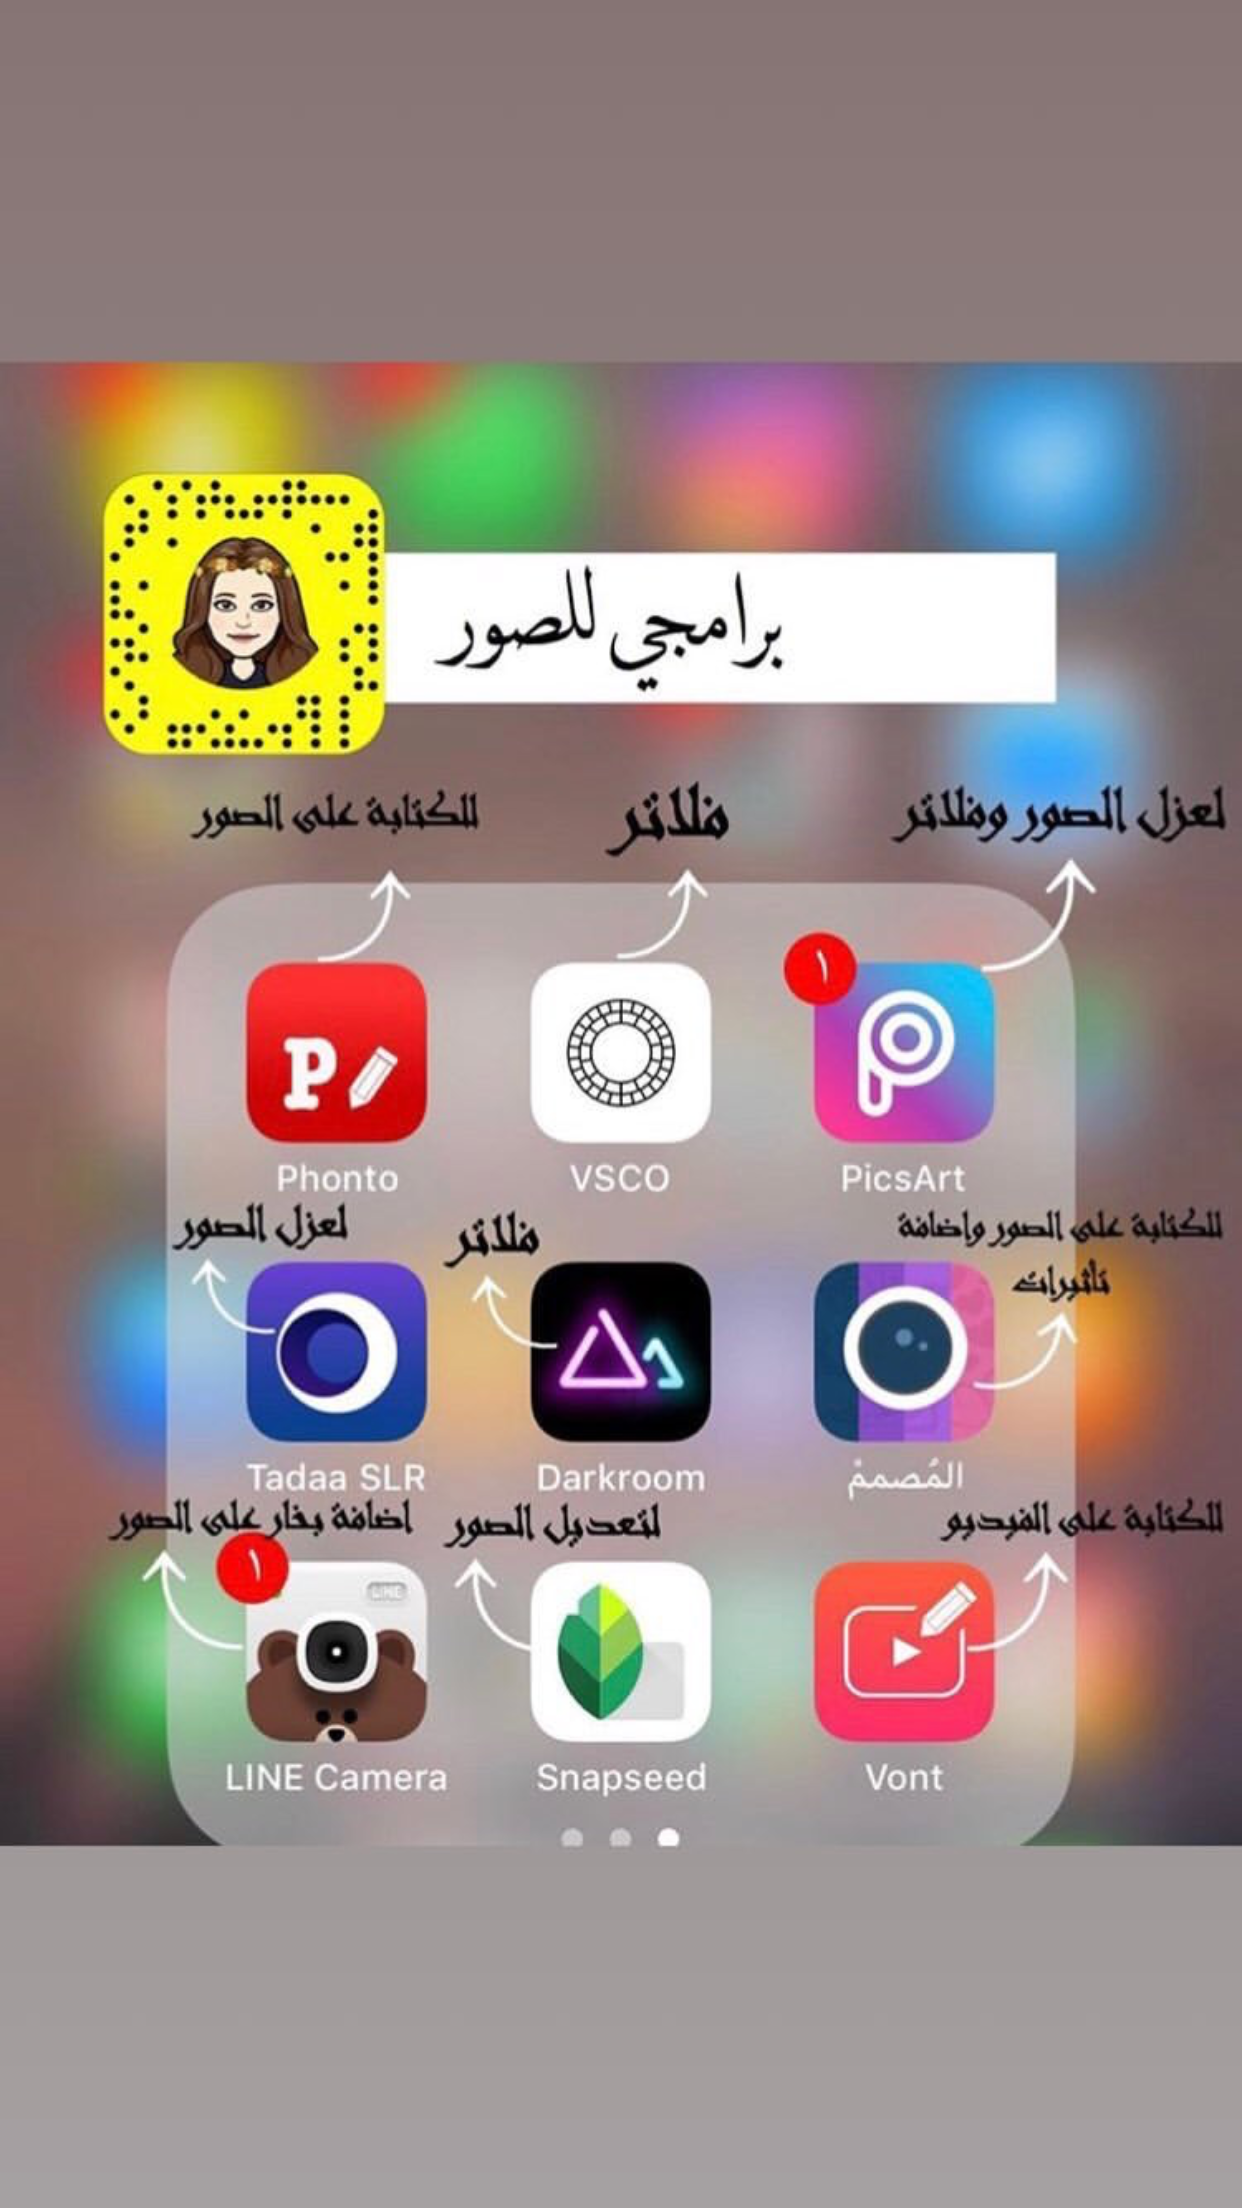 Pin By Aya H Mohammed On App Iphone App Layout App Layout Iphone Photo Editor App